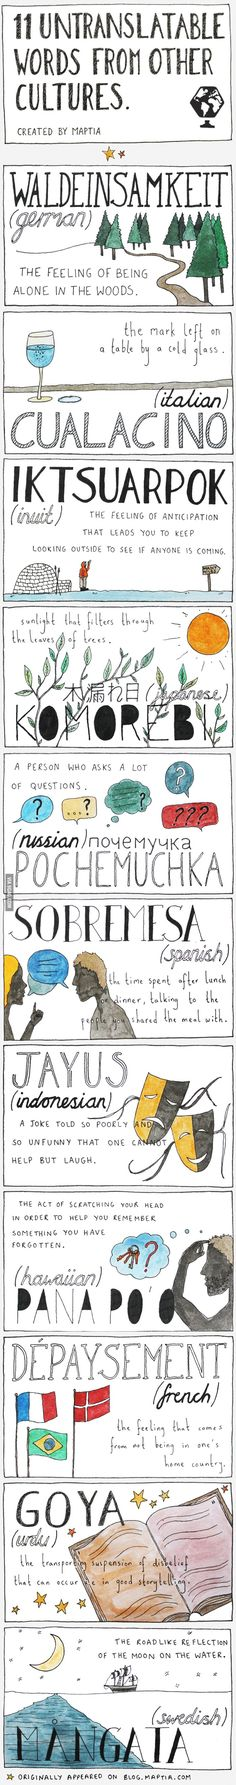 Untranslatable Words, shows a lot about different cultures, pueden ser hasta buenos nombres de bandas